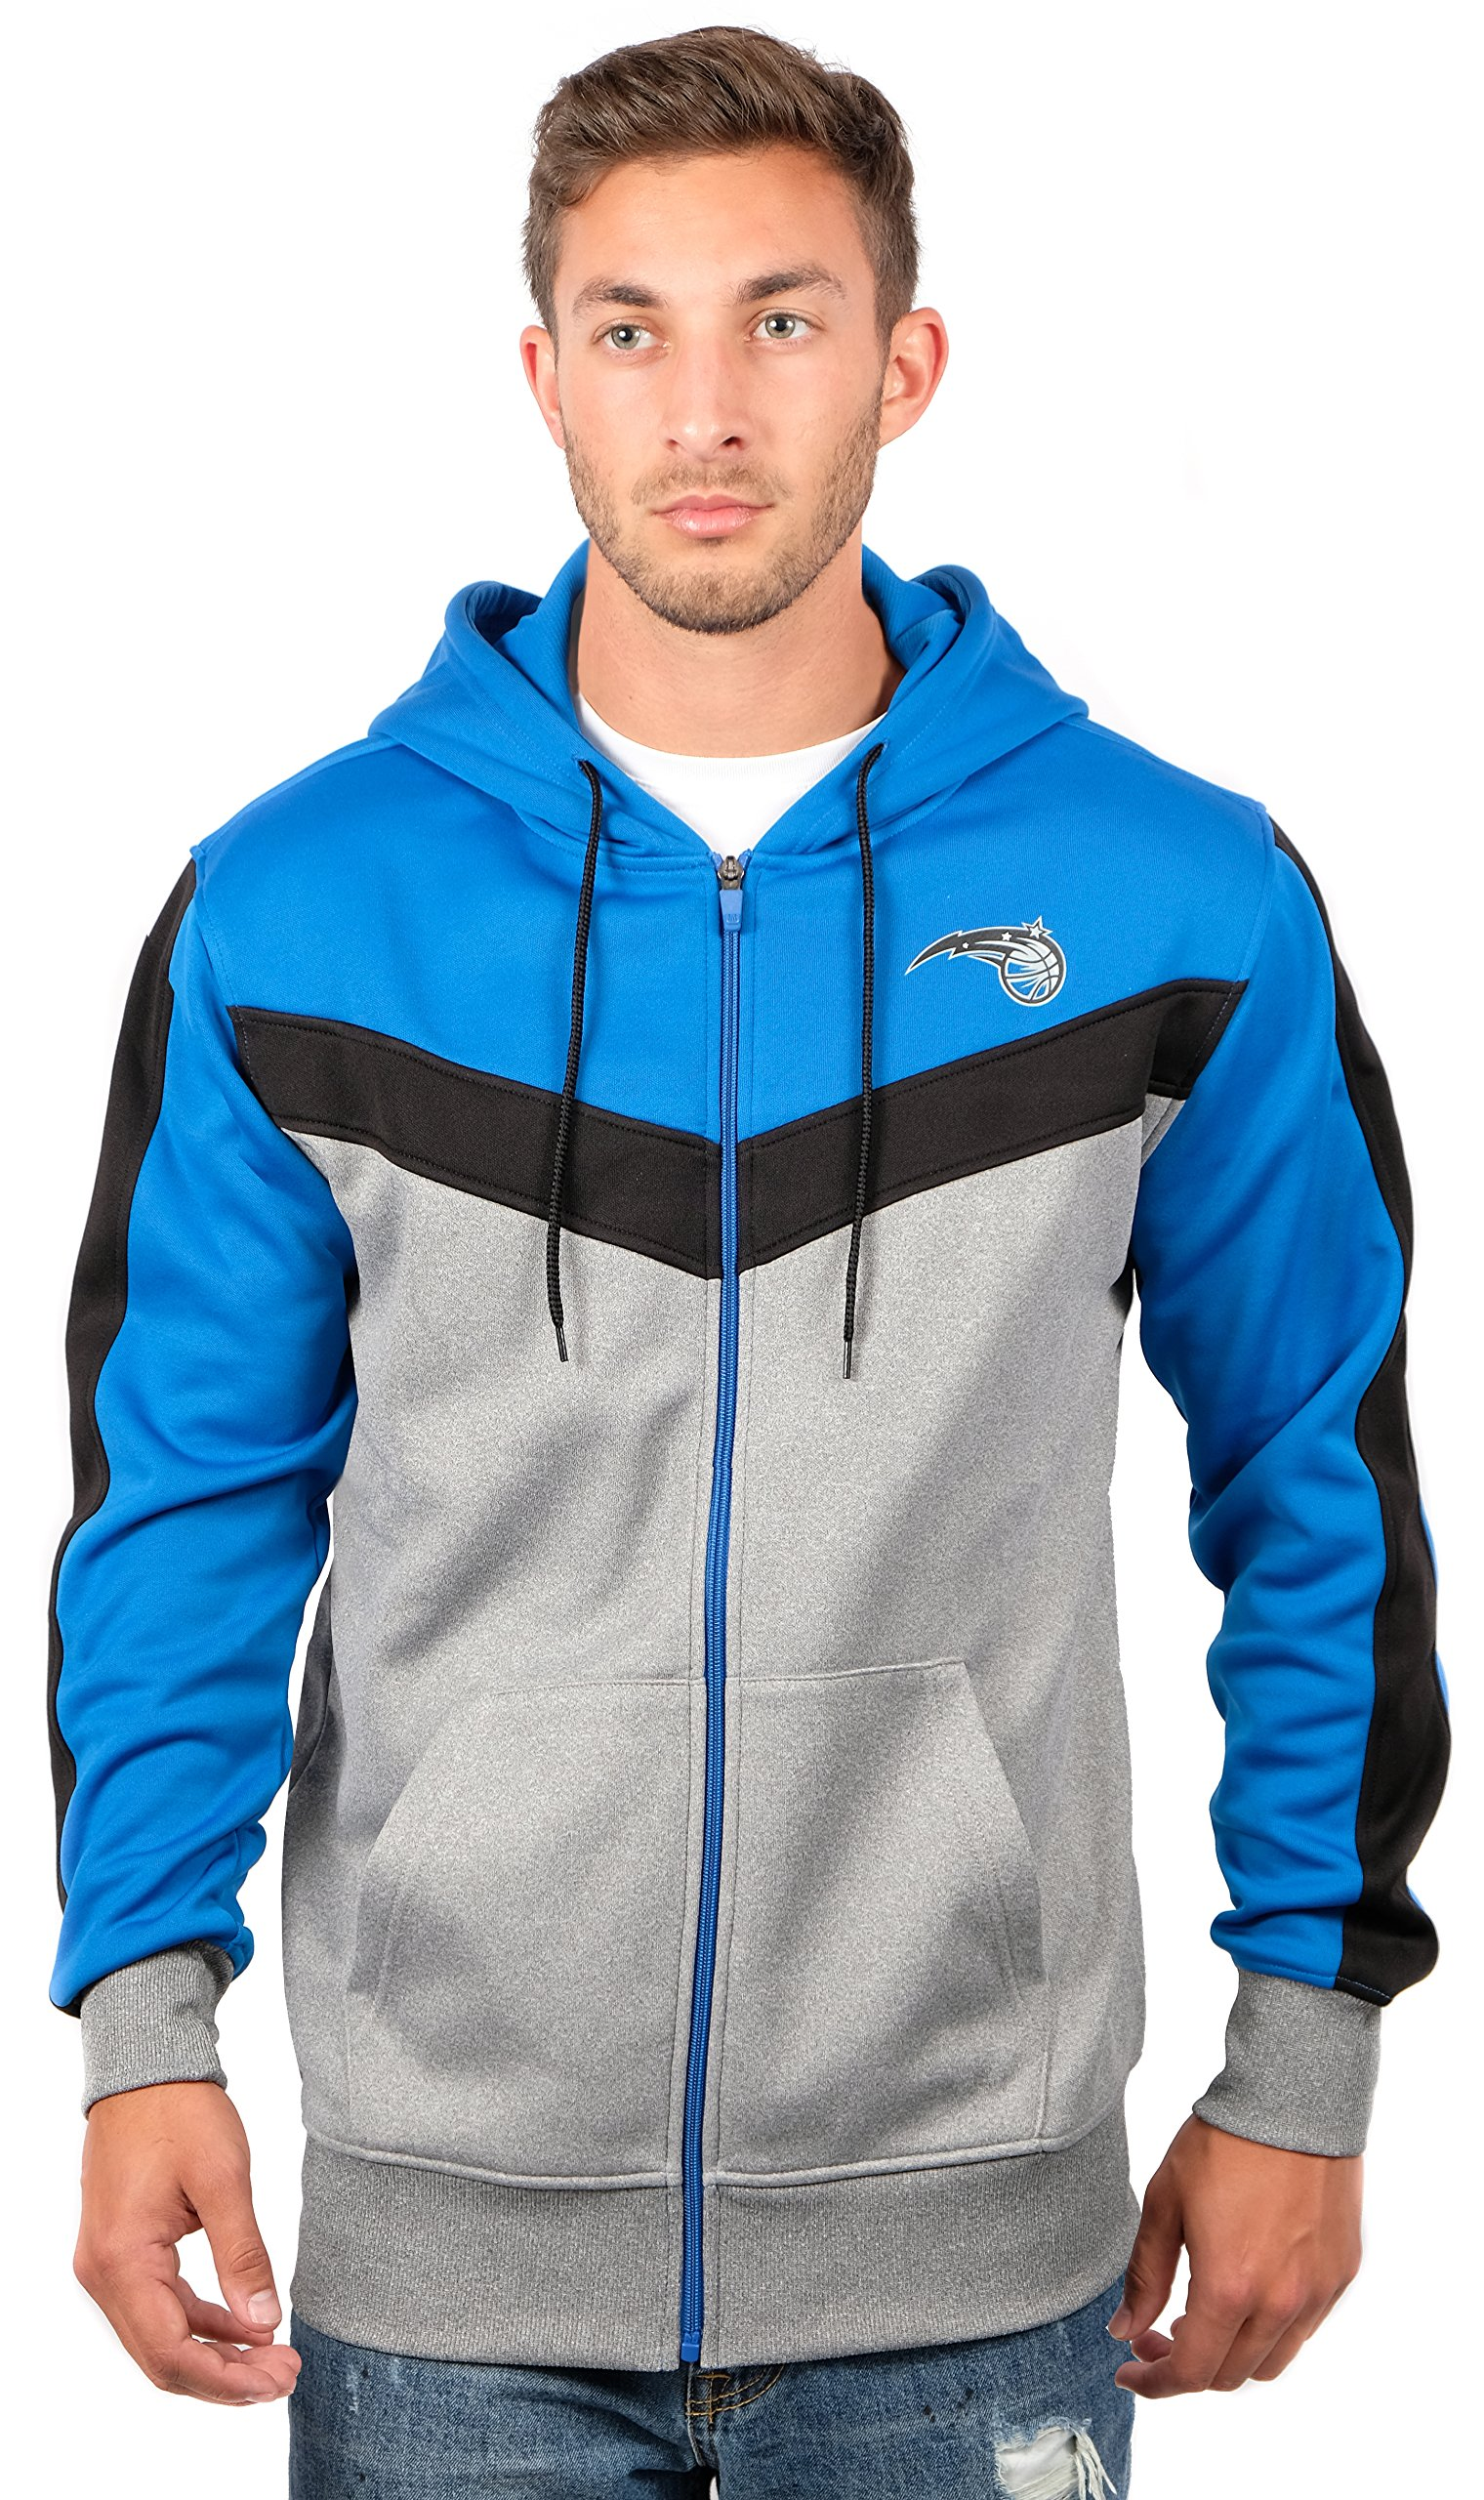 Ultra Game NBA Men/'s Full Zip Soft Fleece Sweatshirt Hoodie Jacket